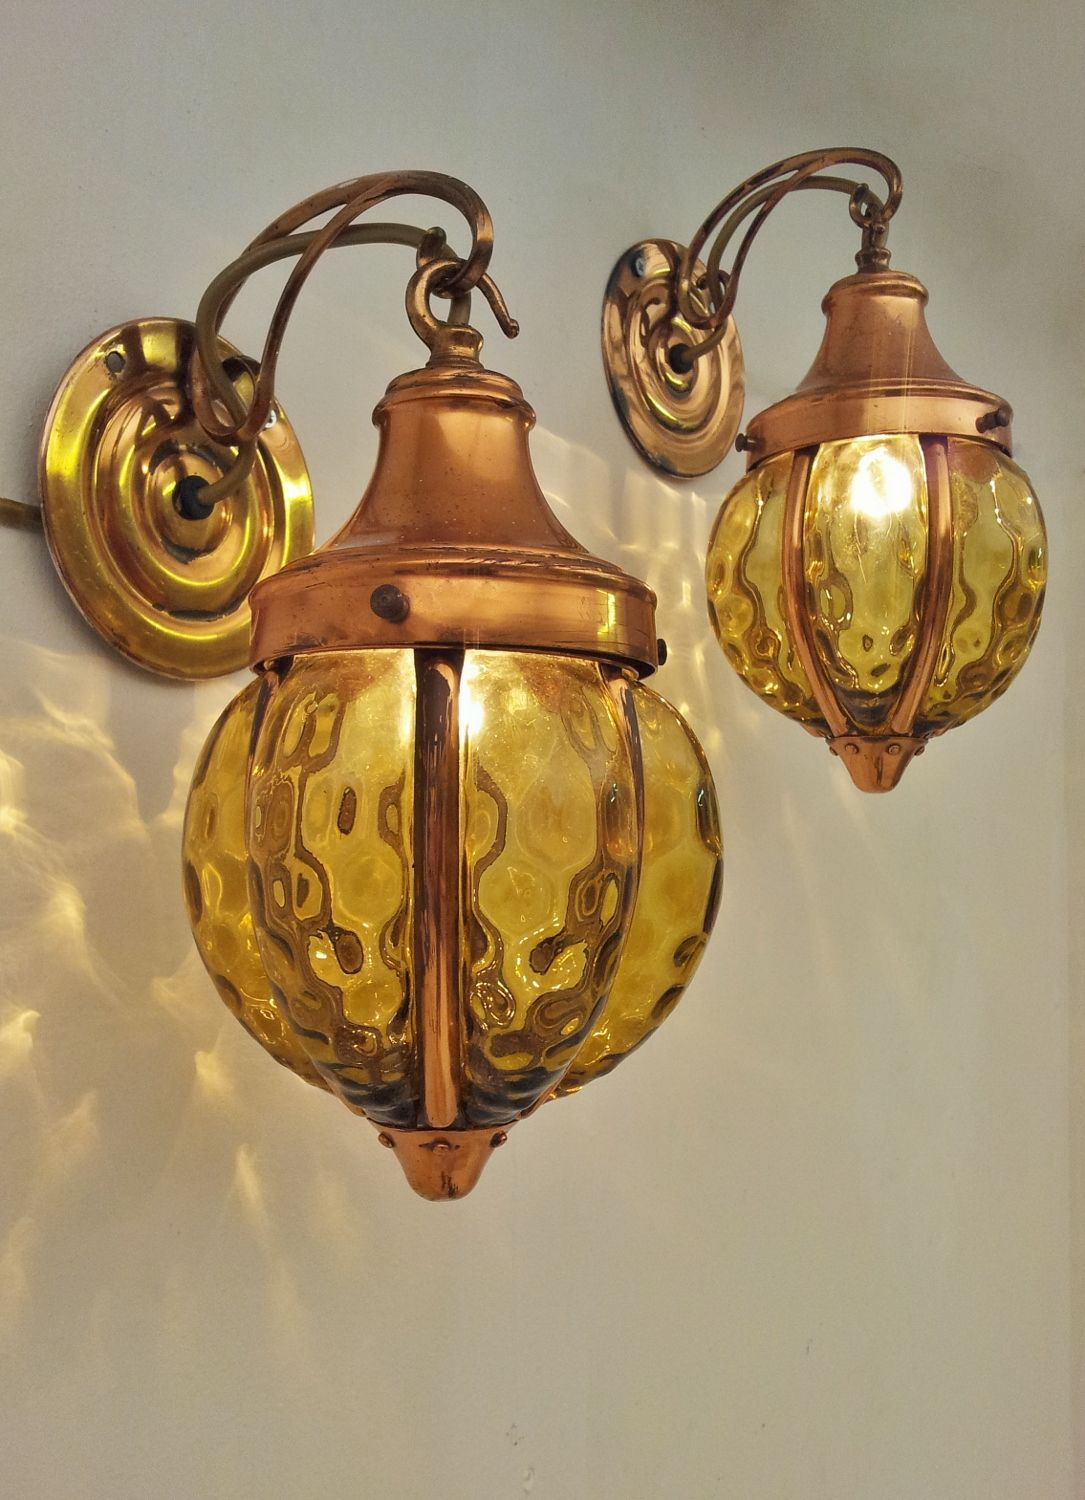 Antique Art Noveau/Arts & Crafts copper & glass wall lights, 1920`s ca, English @ www.roomscape.net